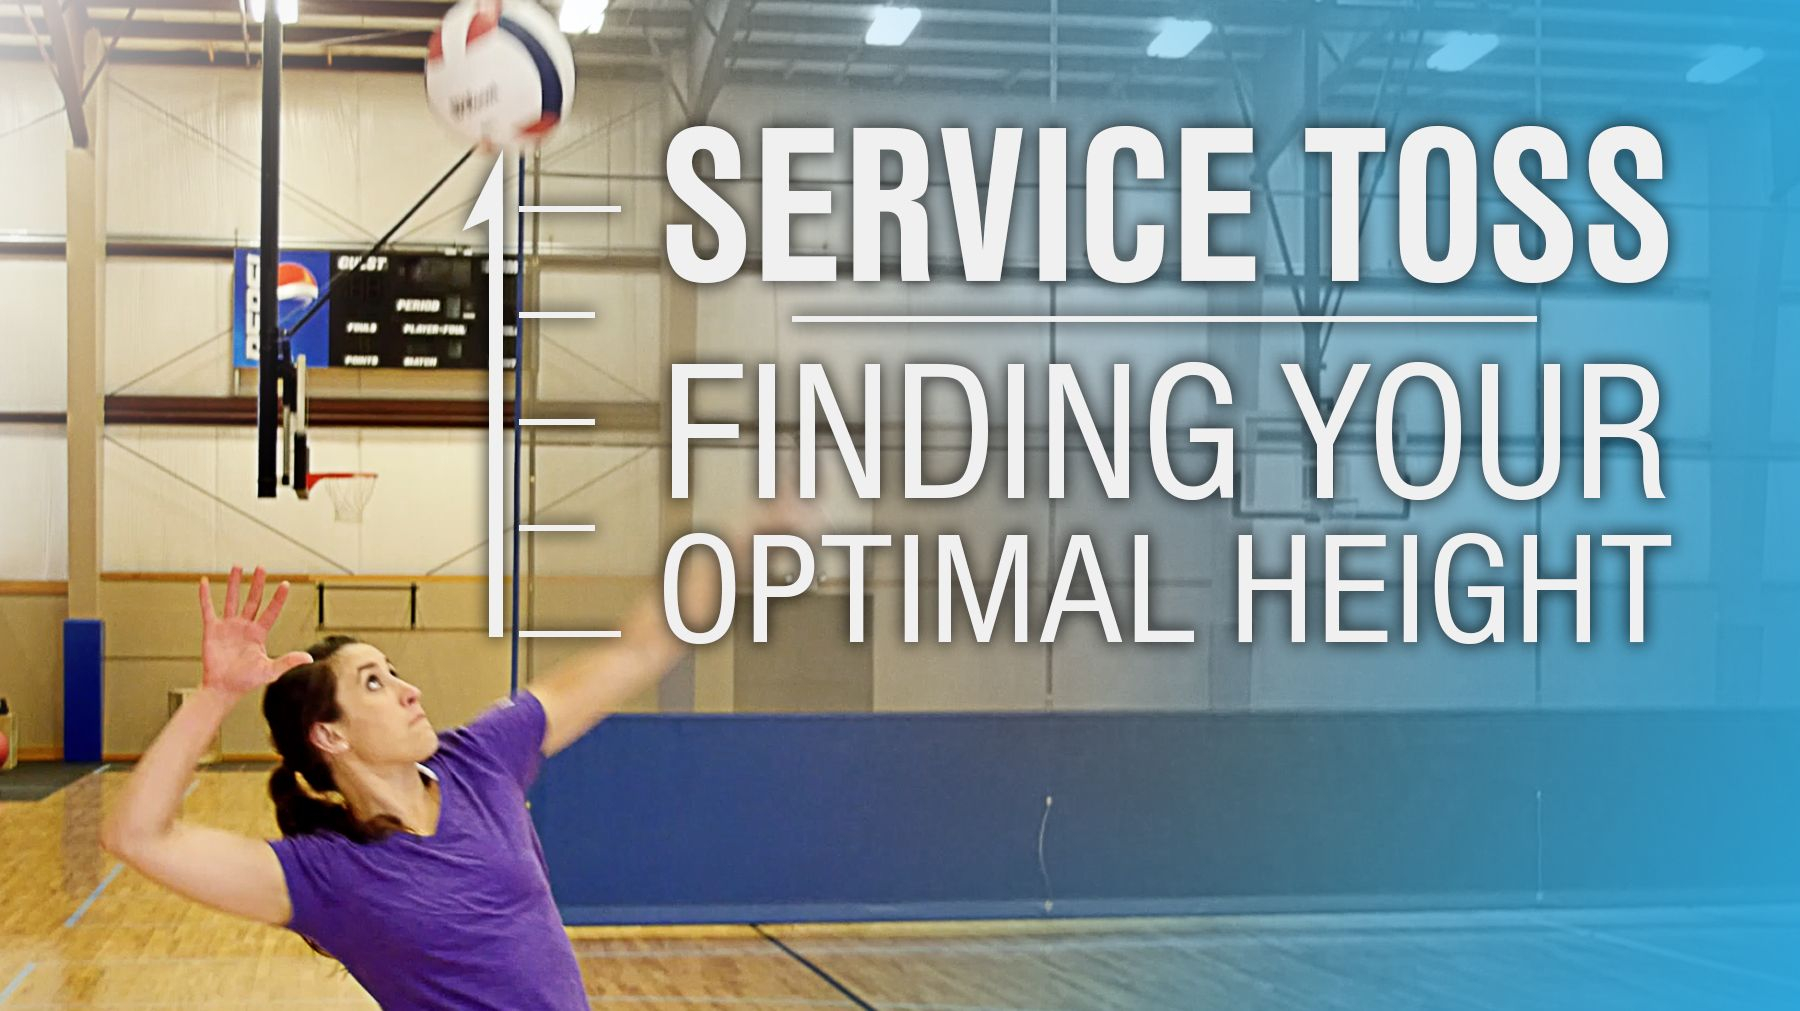 Service Toss Finding Your Optimal Height The Art Of Coaching Volleyball Coaching Volleyball Volleyball Training Volleyball Serving Drills